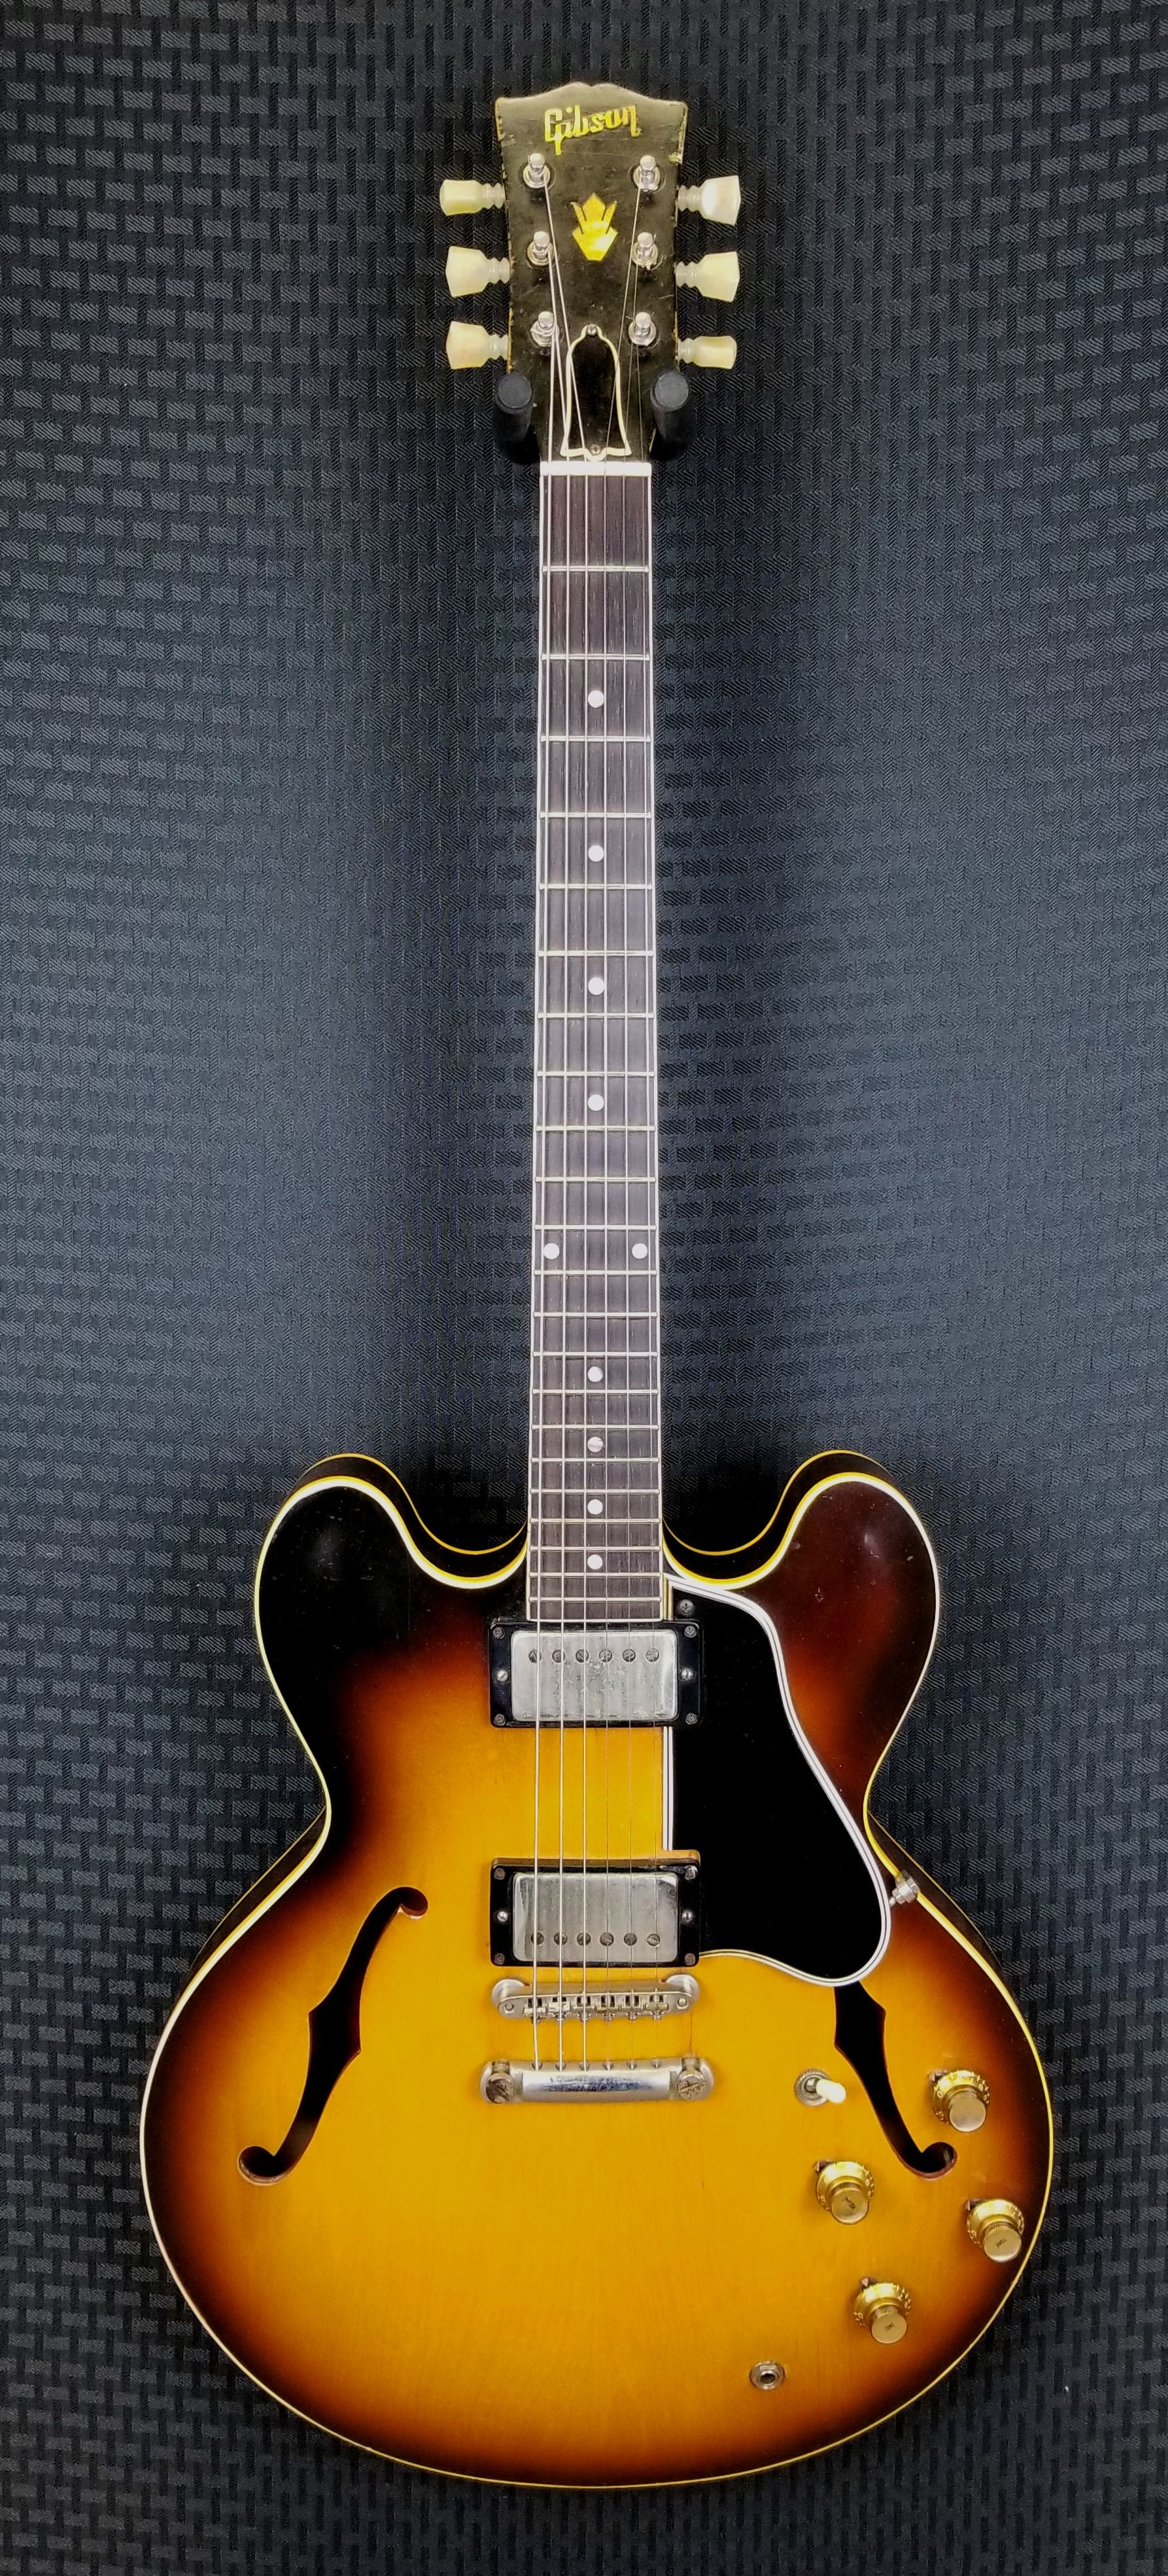 **** SOLD ****1961 ES 335 Beautiful Sunburst